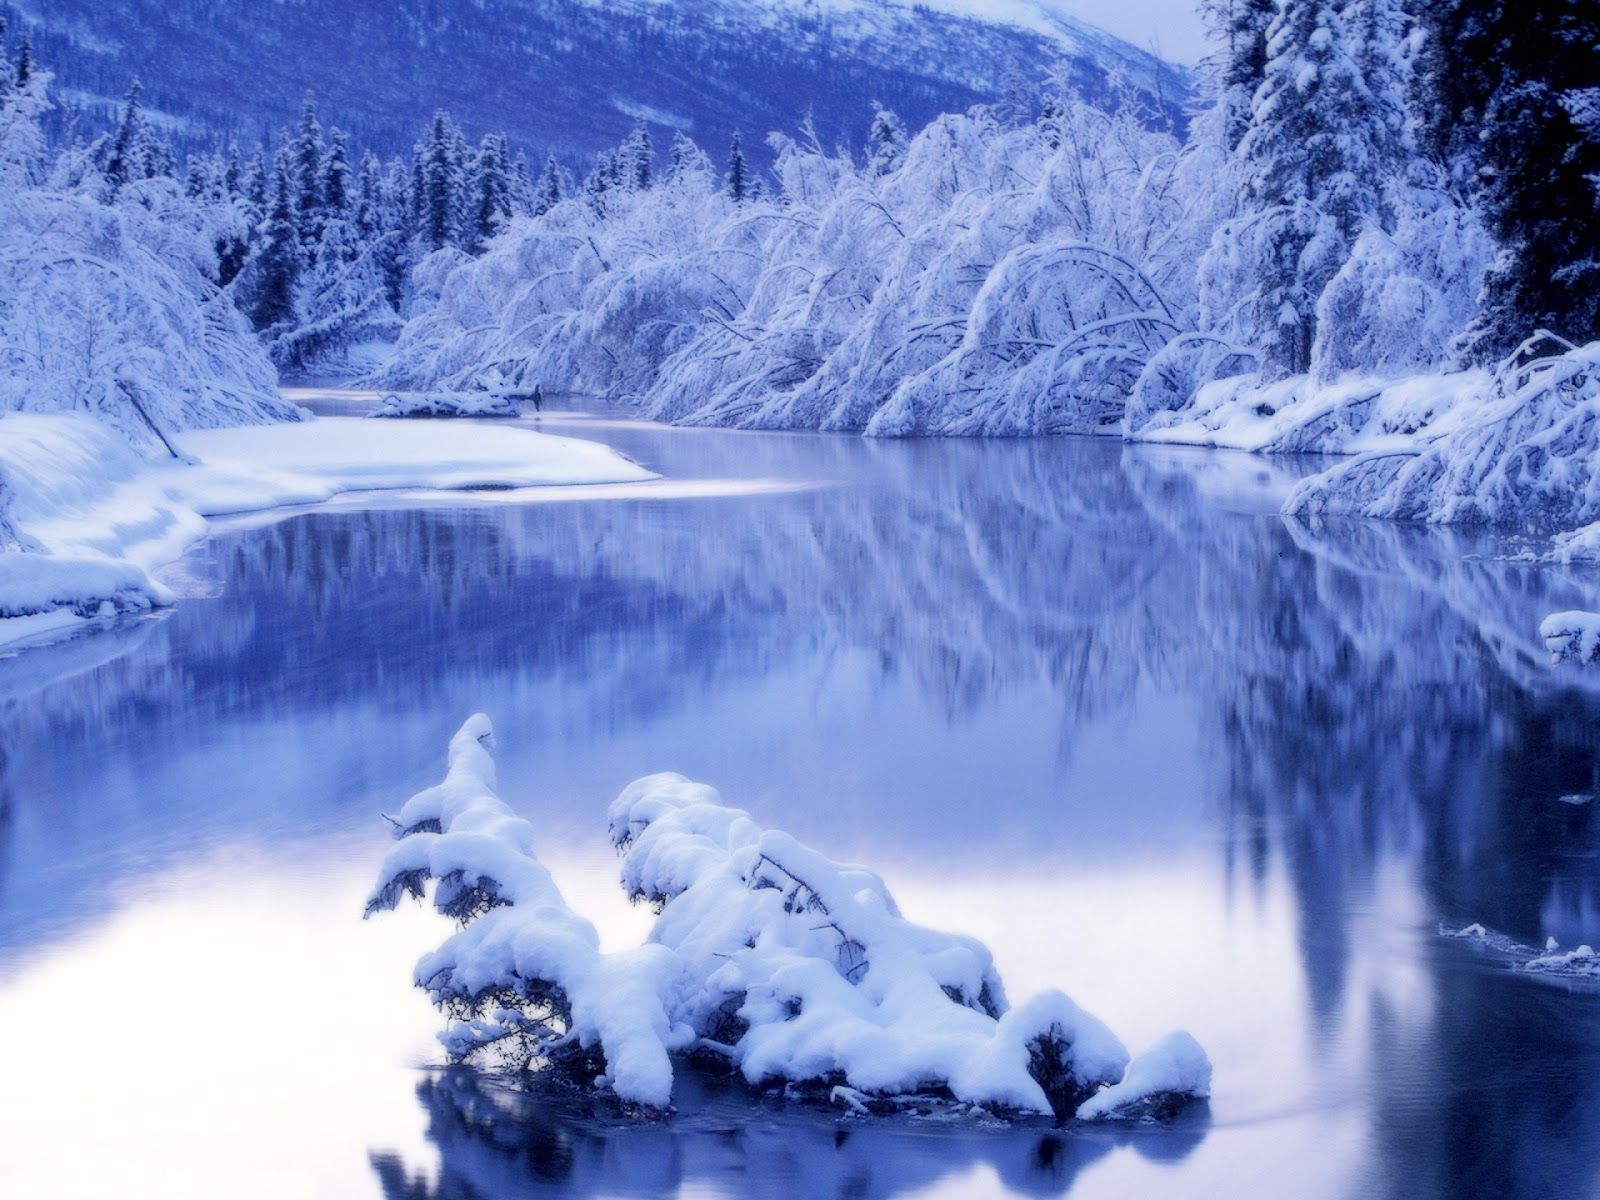 Top   Wallpaper Home Screen Winter - winter-wallpaper-5  Perfect Image Reference_46914.jpg